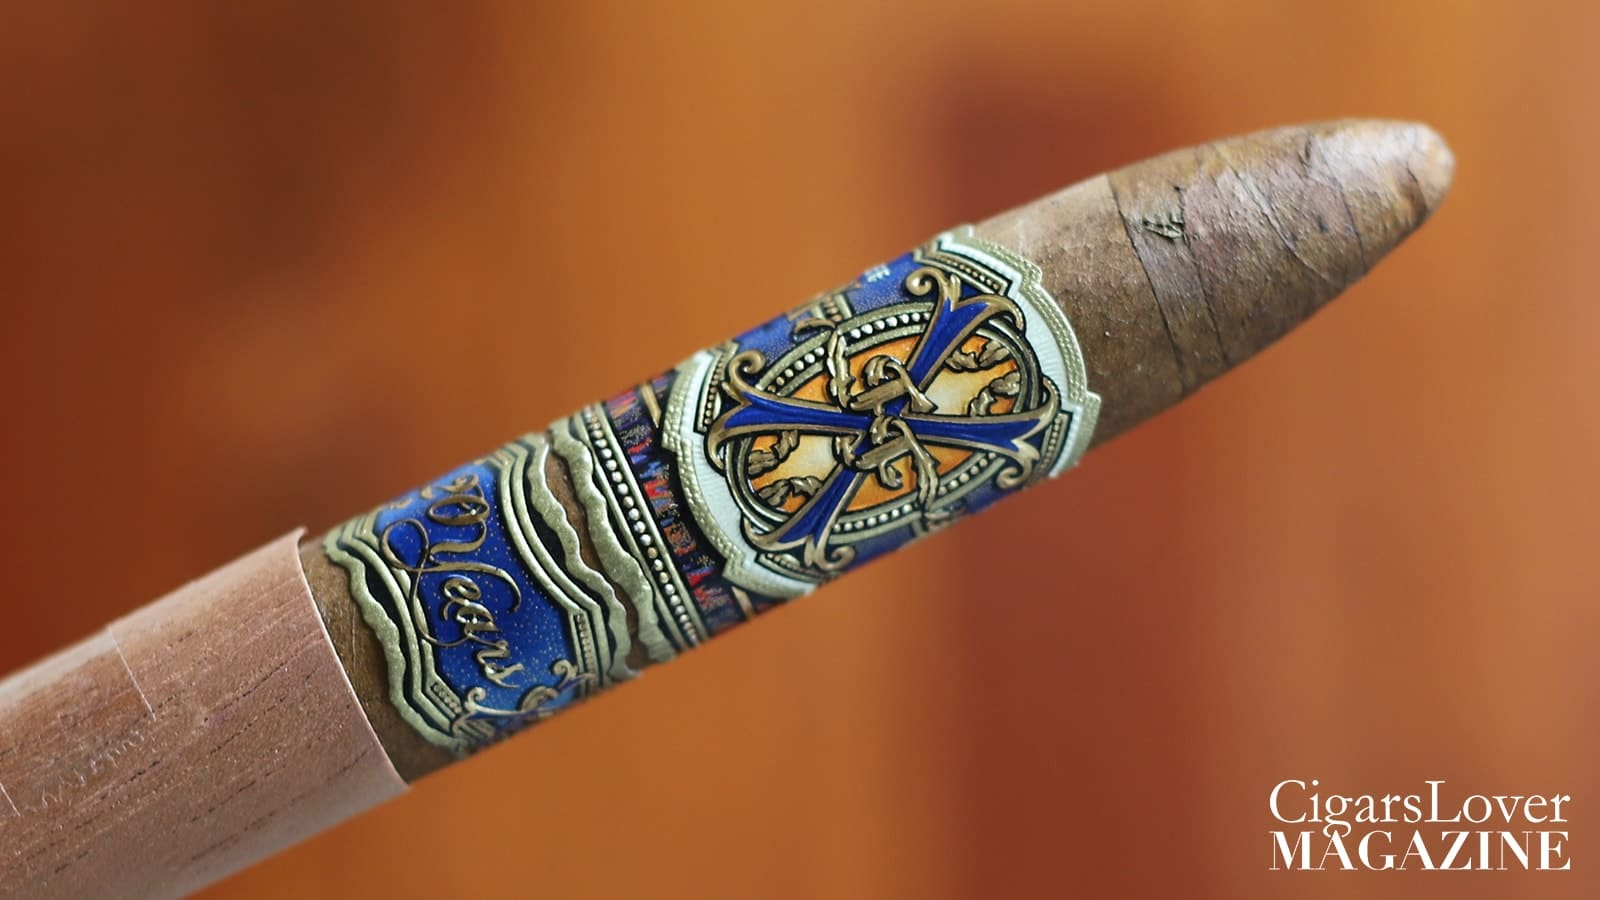 Arturo Fuente OpusX 20th Power of the Dream